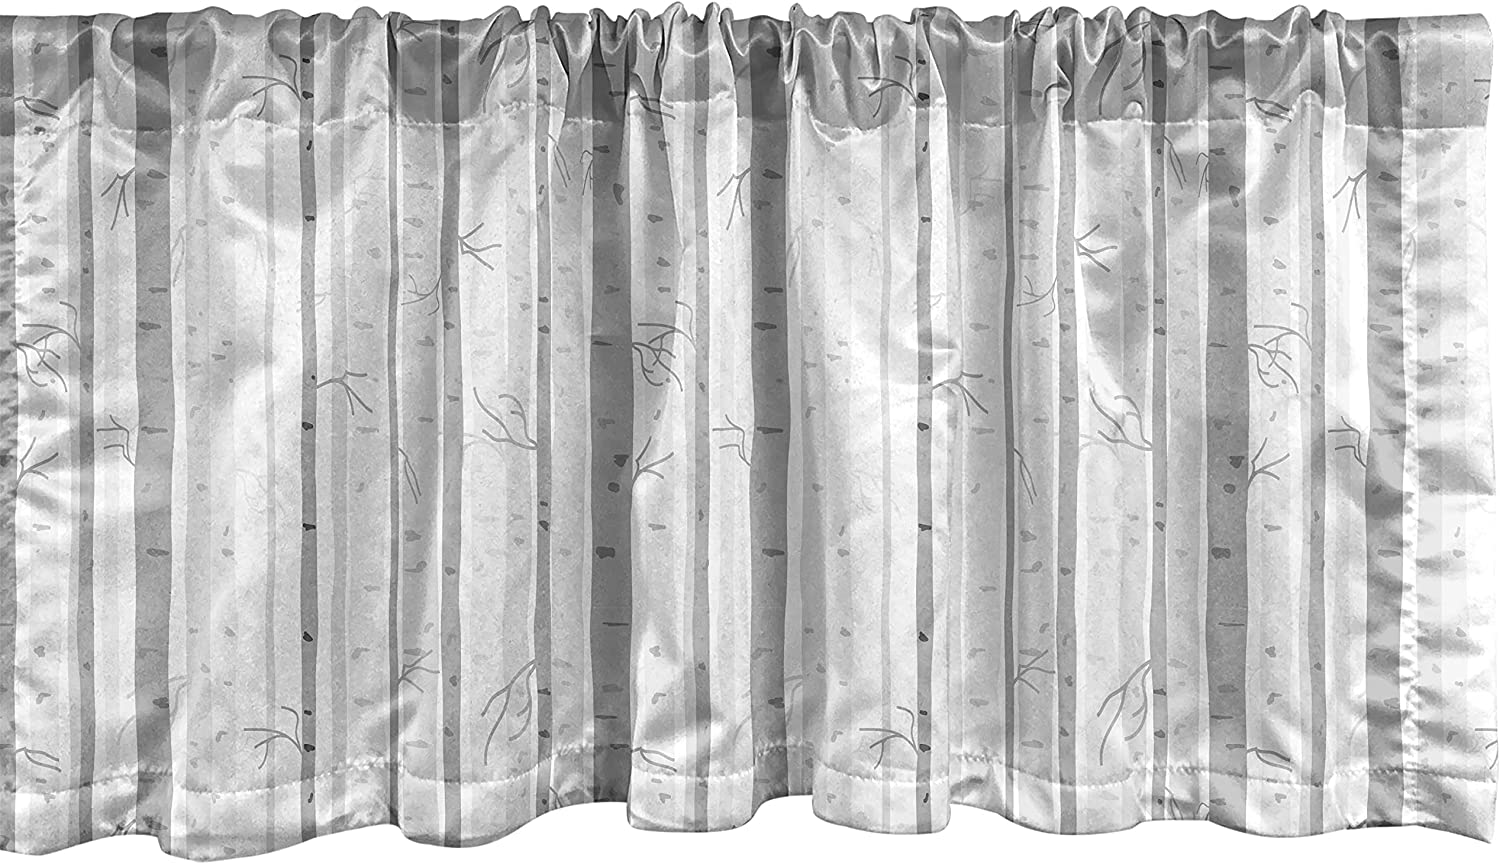 Ambesonne Grey and White Window Valance, Birch Tree Grove Leafless Branches Winter Woodland Illustration, Curtain Valance for Kitchen Bedroom Decor with Rod Pocket, 54